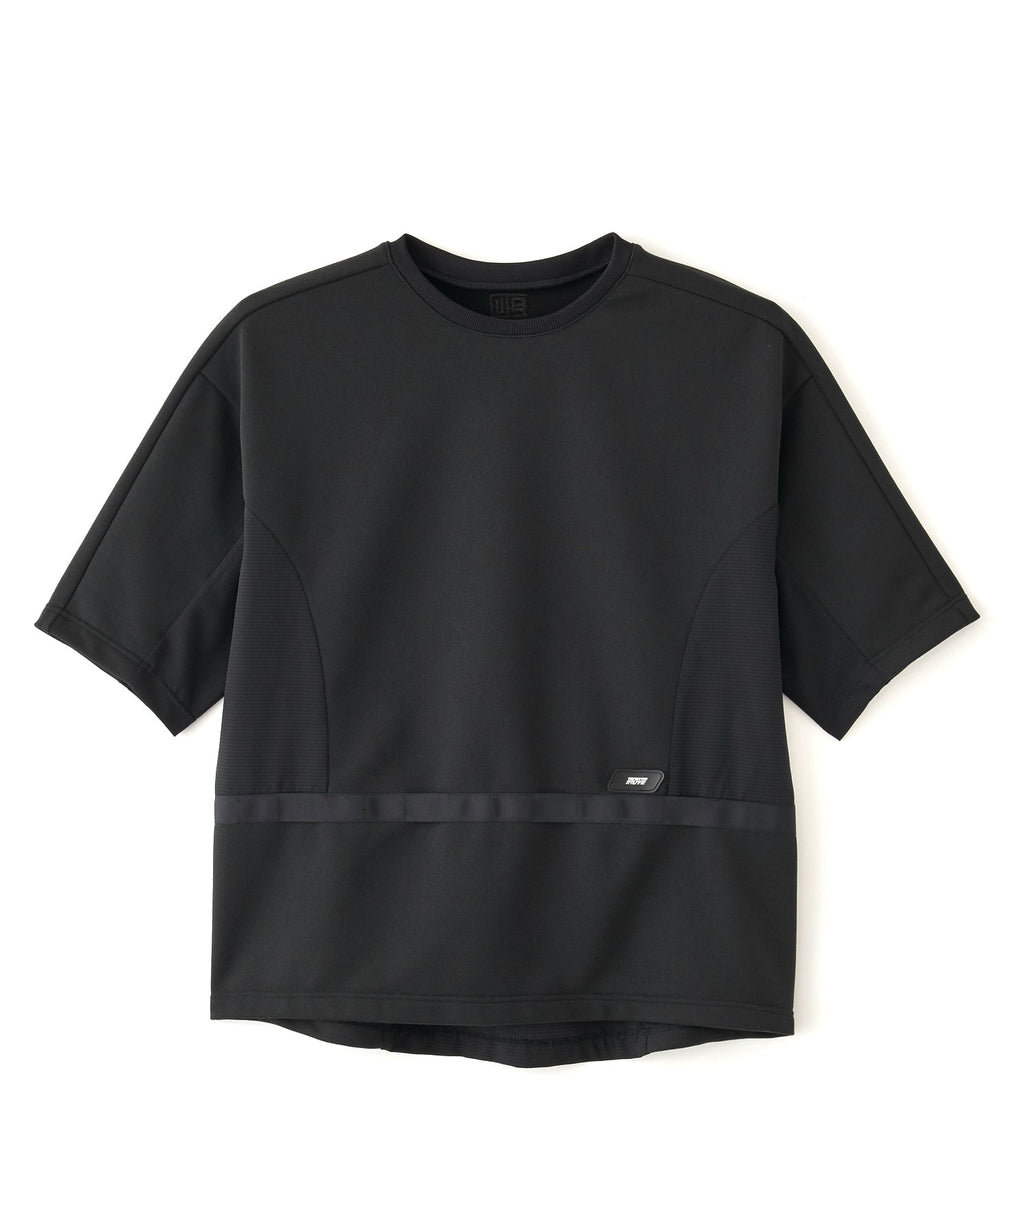 【PRE-ORDER】TROVERTEX / TVX-CUT-02 / BLACK